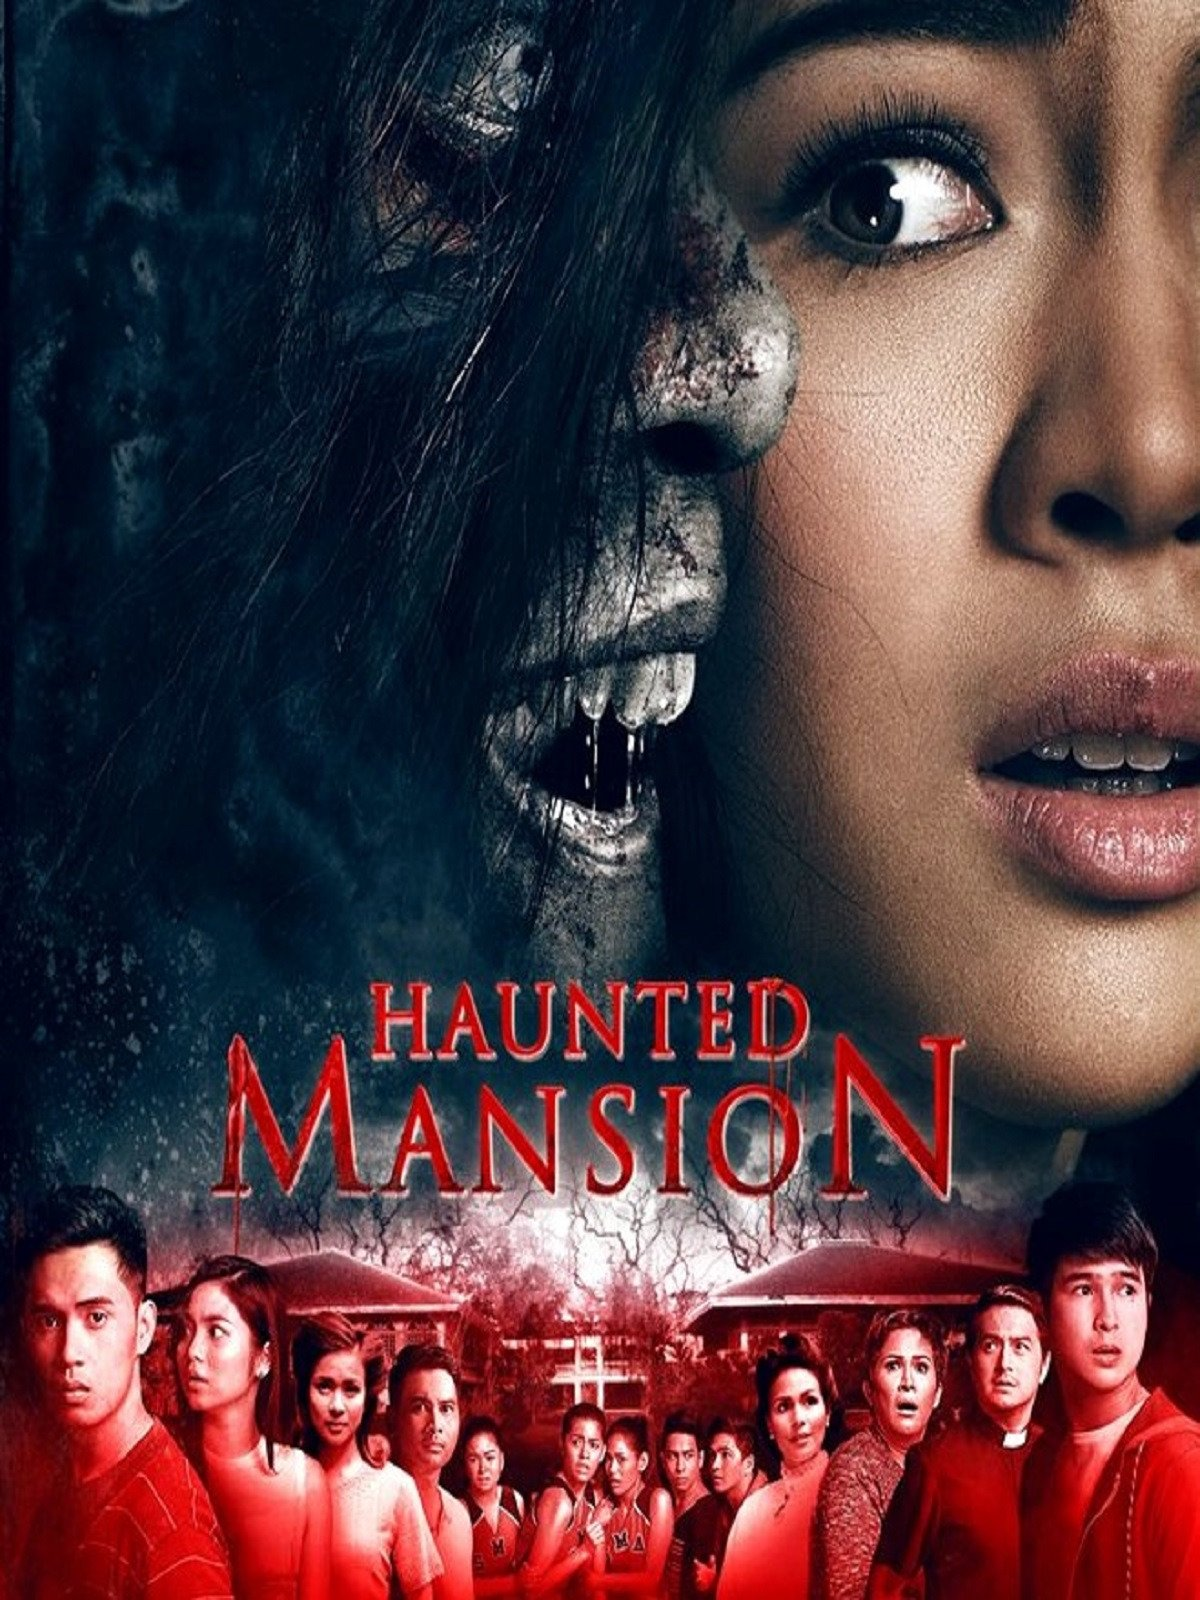 Watch Haunted Mansion Prime Video